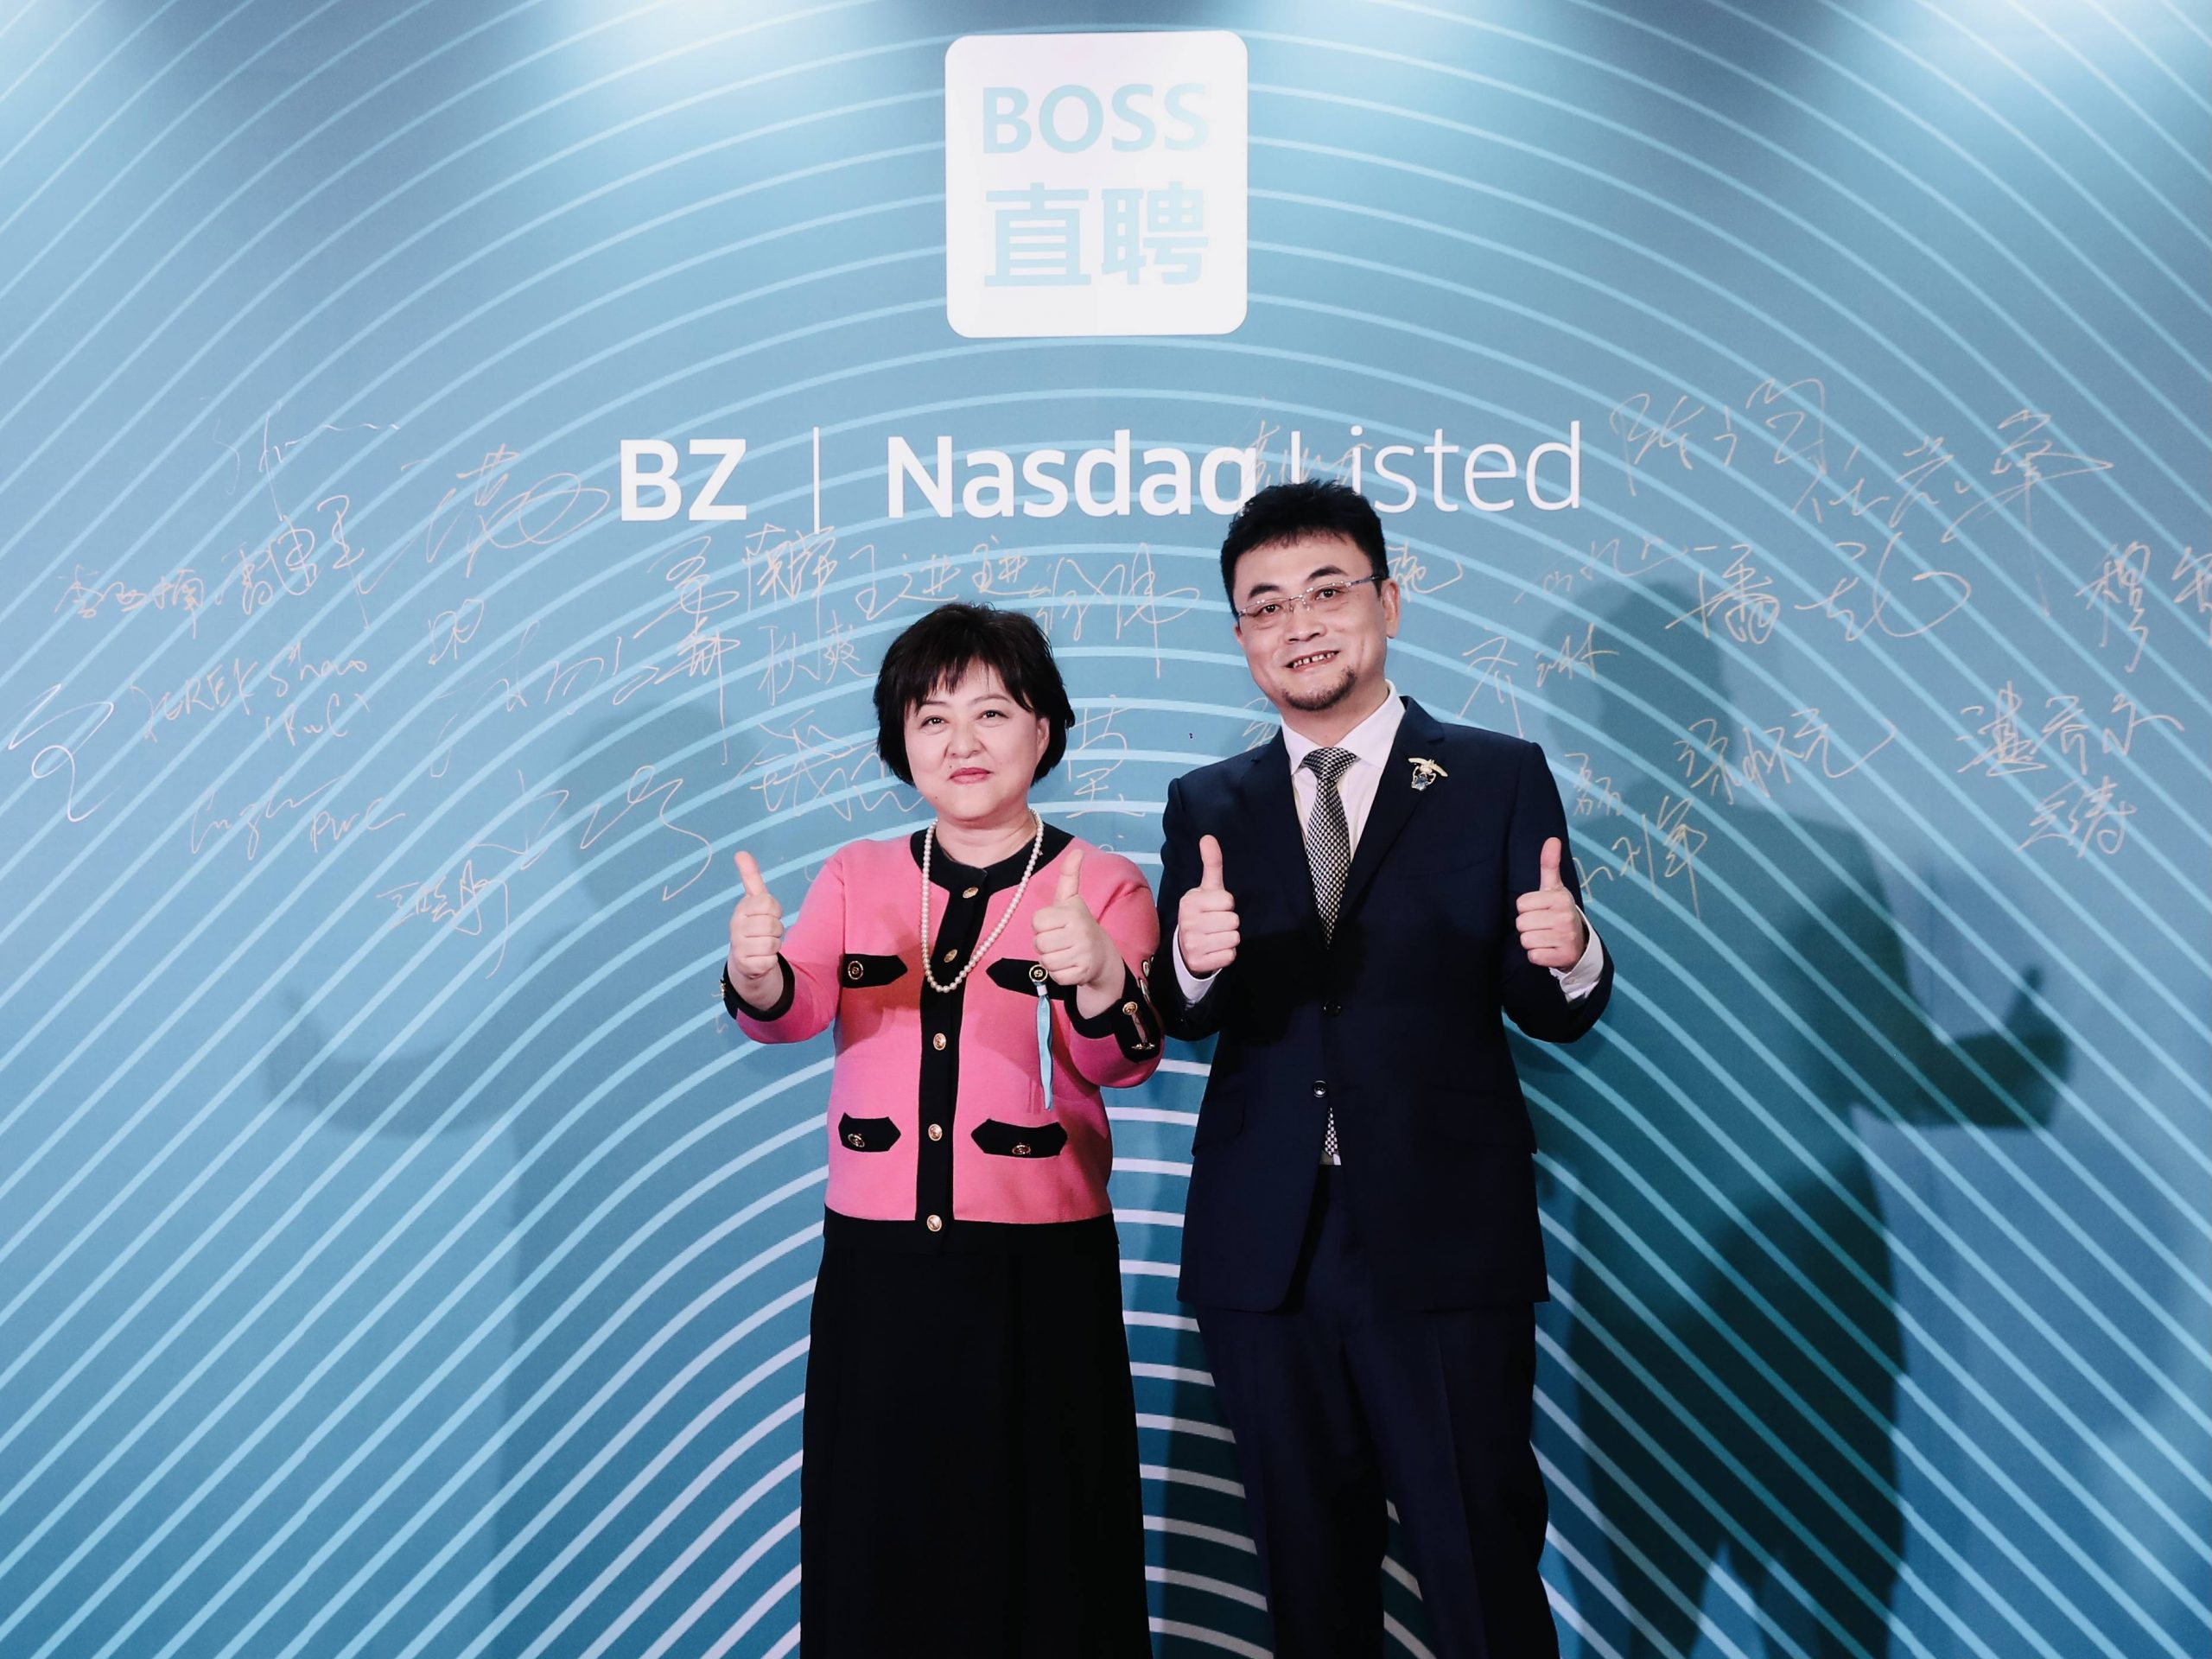 Dialogue with Xu Xin: To seize tens of billions of dollars of BOSS in 21 hours, too many people ignore the charm of heavy betting and compound interest